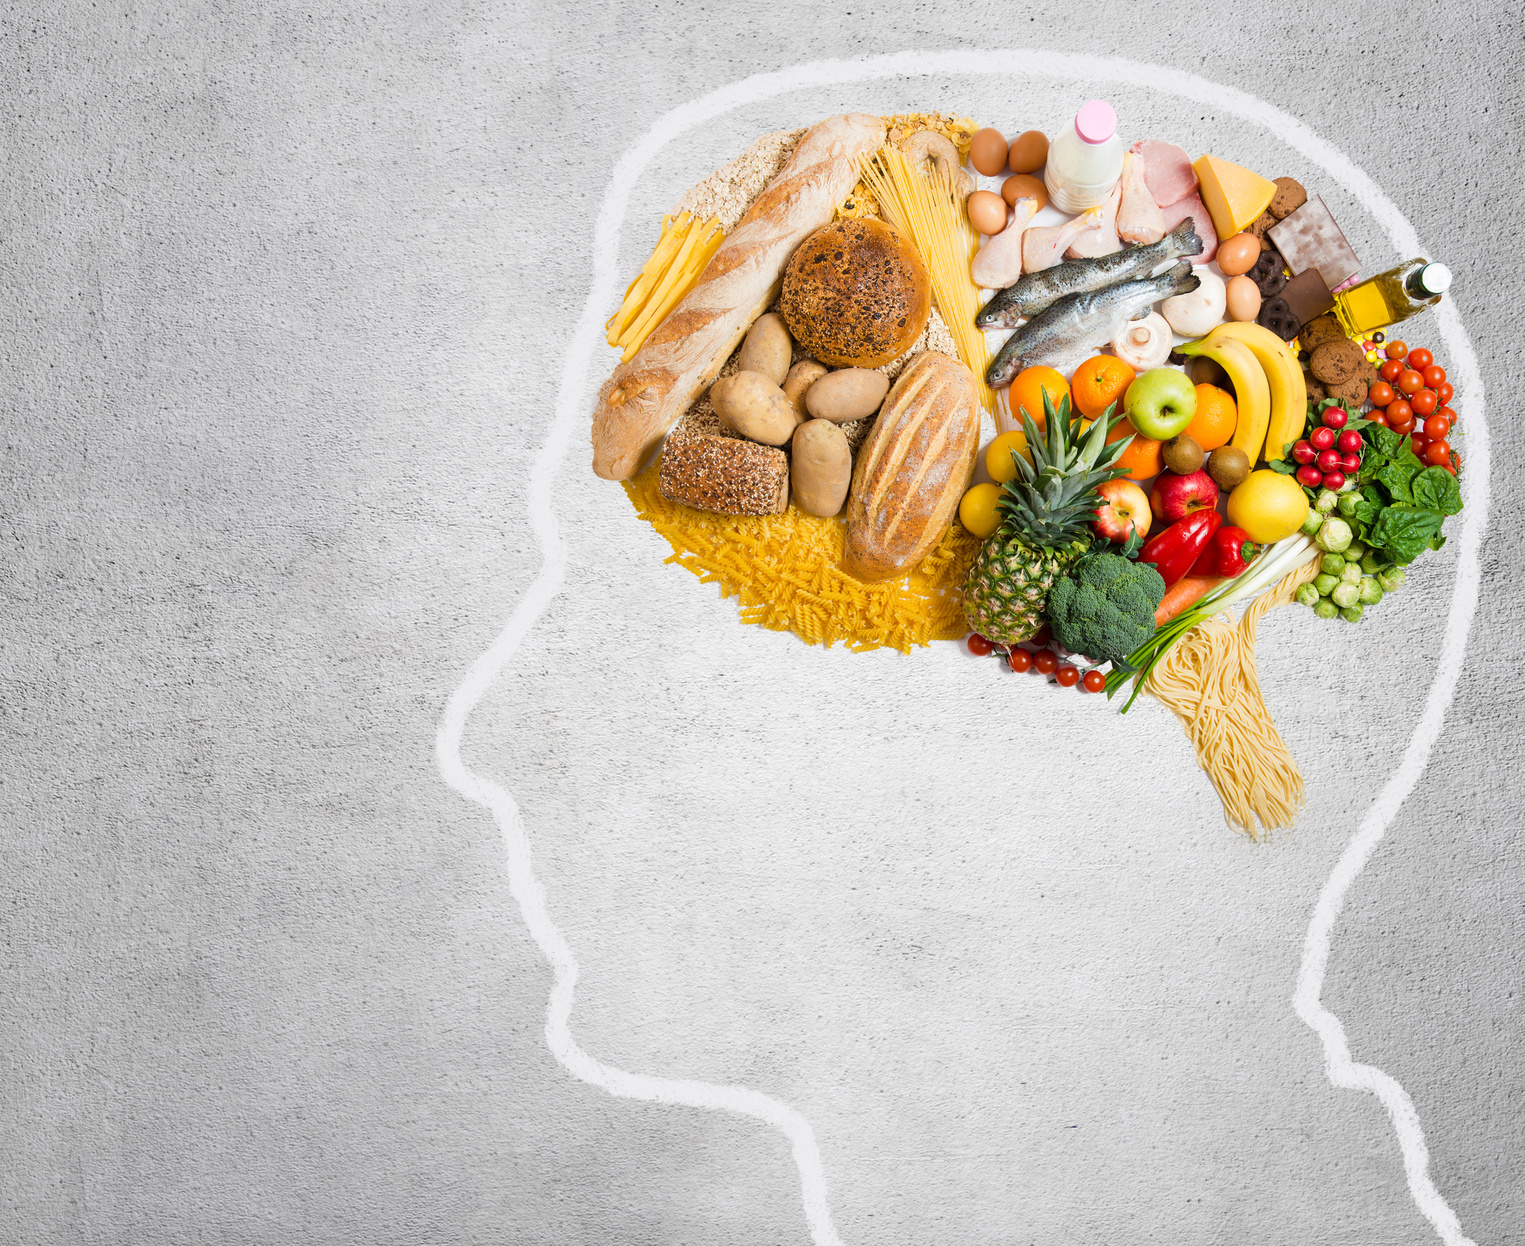 Practicing Good Nutrition As You Age